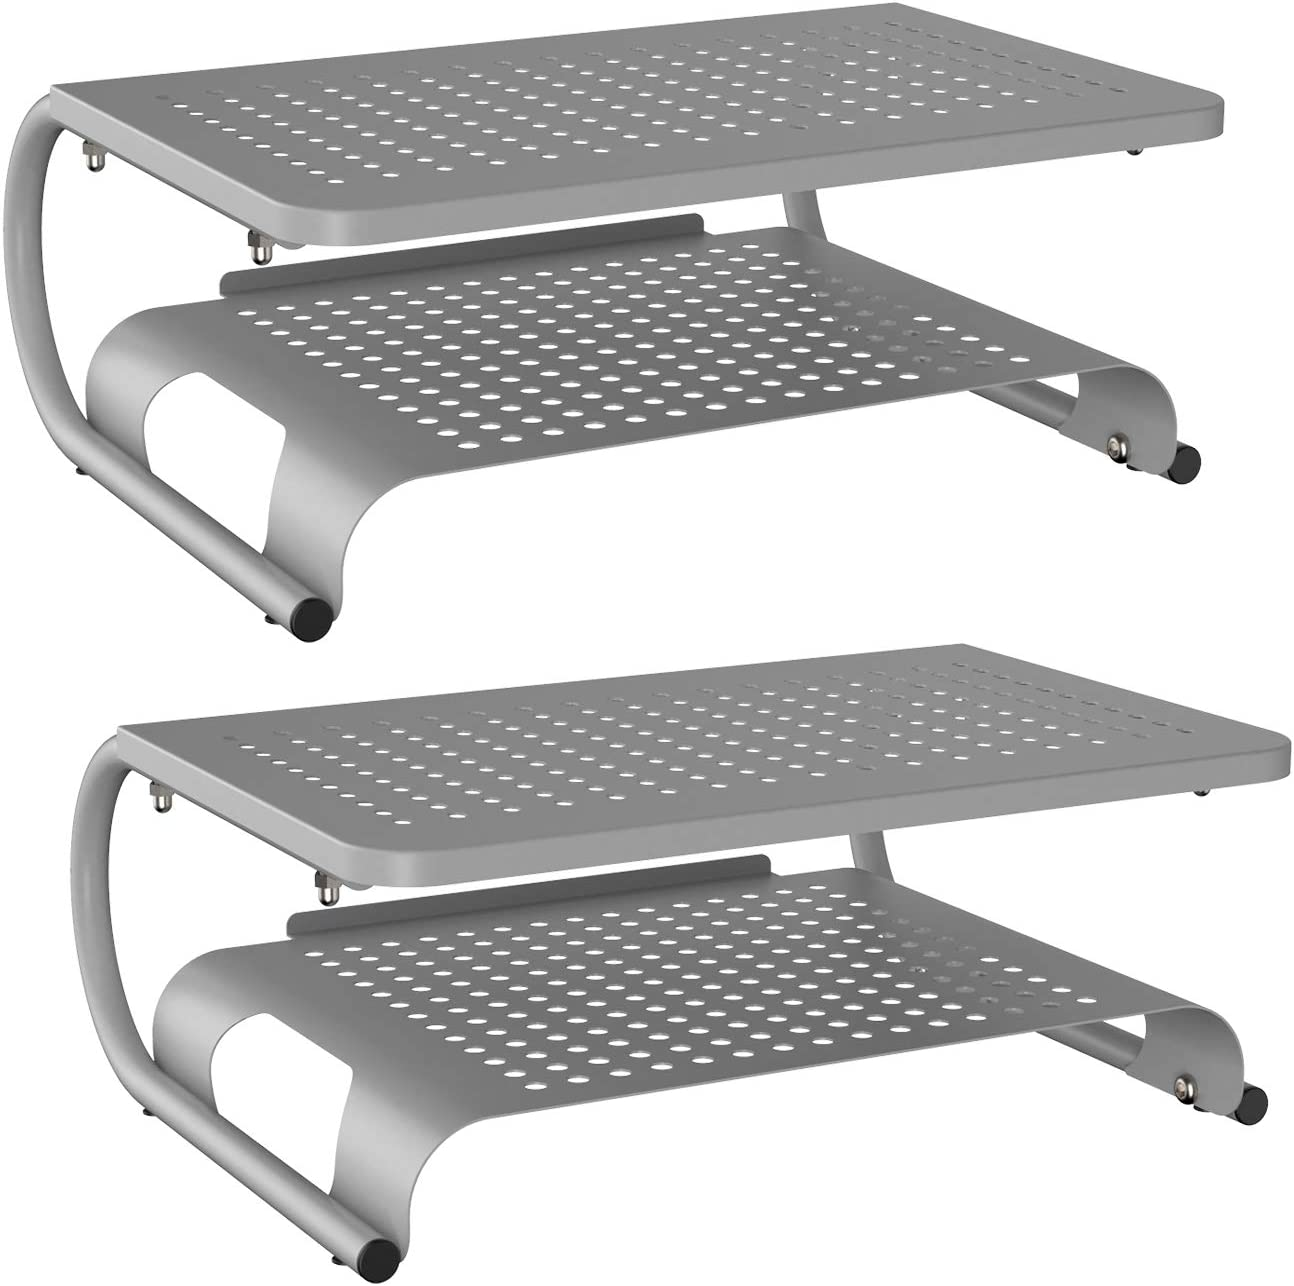 Monitor Riser Desktop Stand with Vented Metal and 2 Tier Desk Organizer Stand for Computer, Laptop, LED, LCD, OLED Flat Screen Display, iMac and Printer (STT001BS-2) by WALI, Silver, 2 Pack